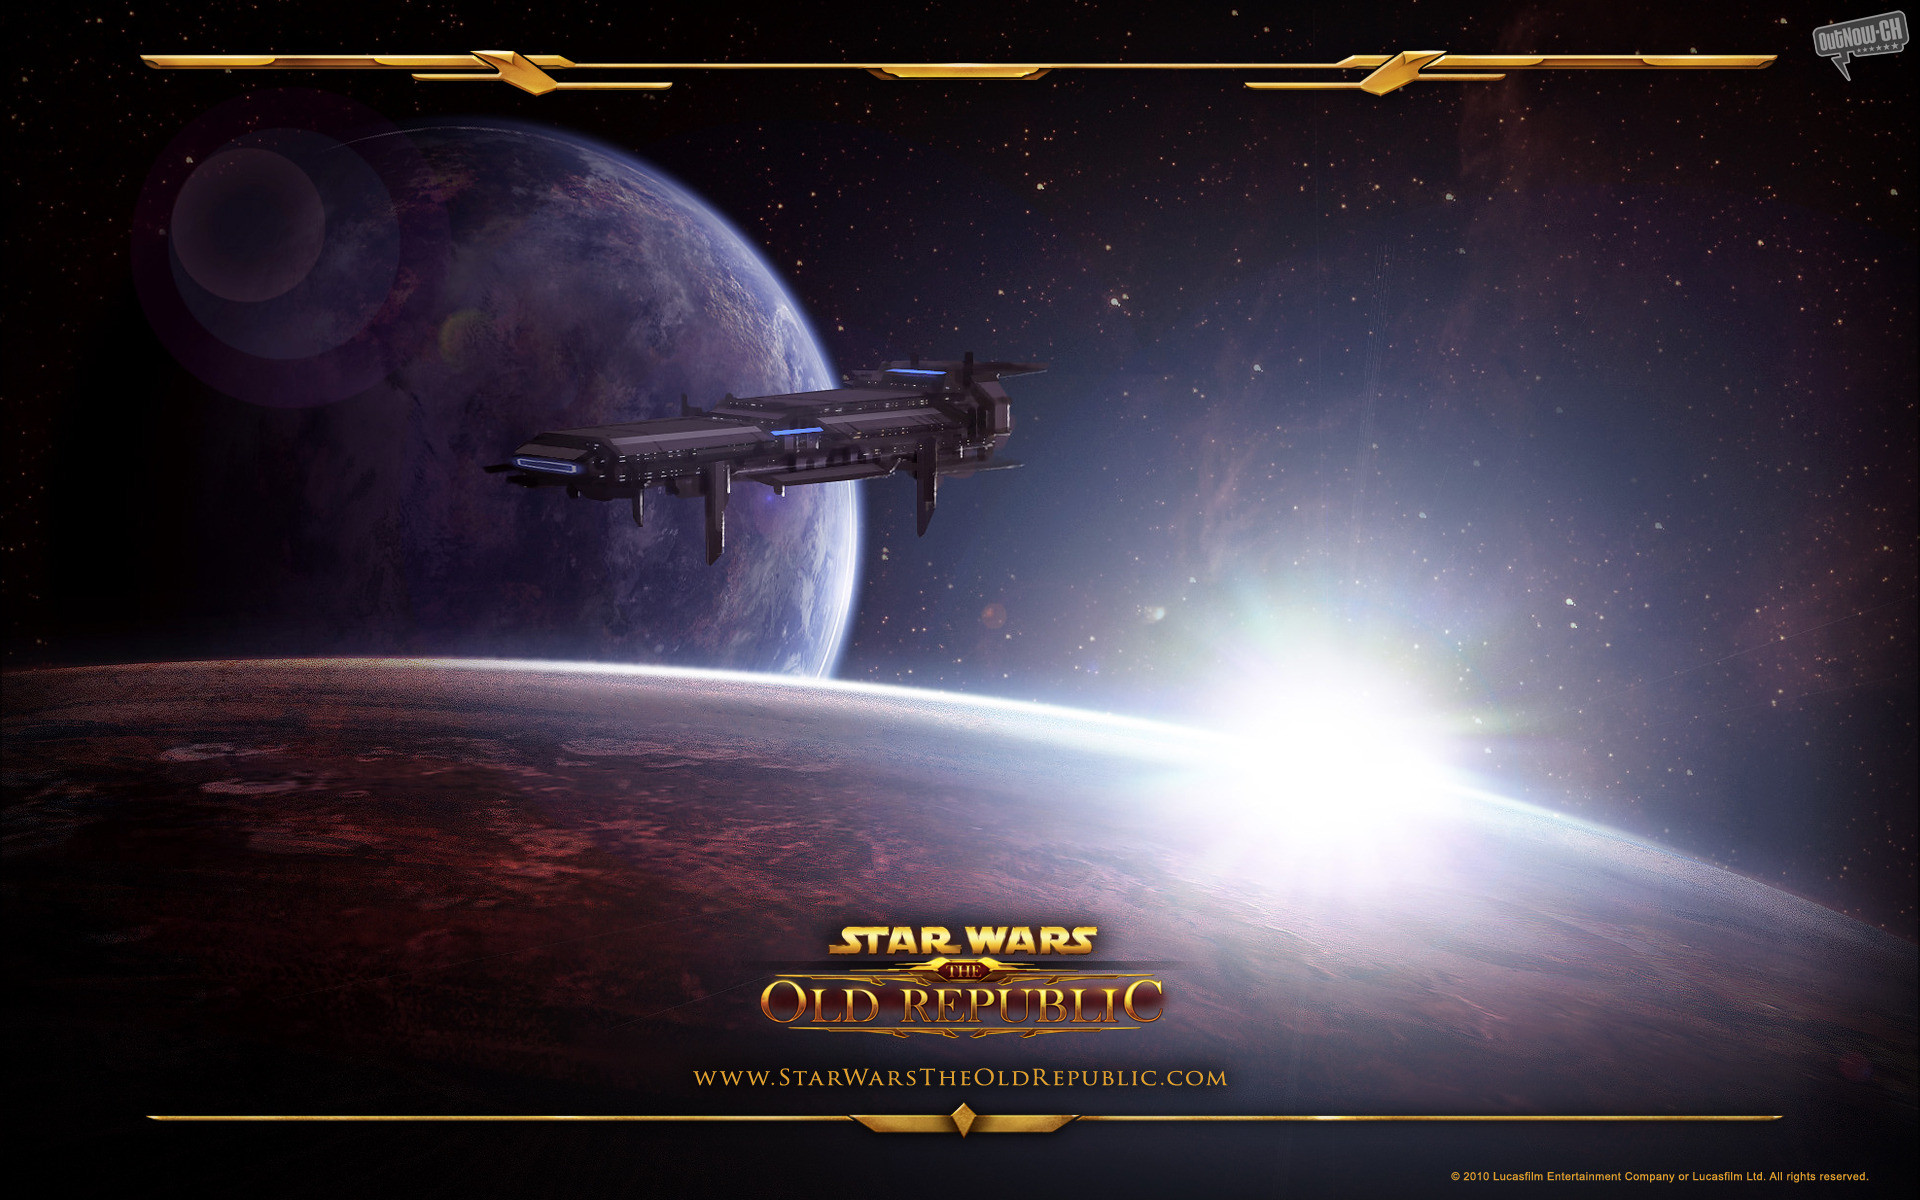 1920x1200 Star Wars: The Old Republic, Or Abbreviated as SWTOR